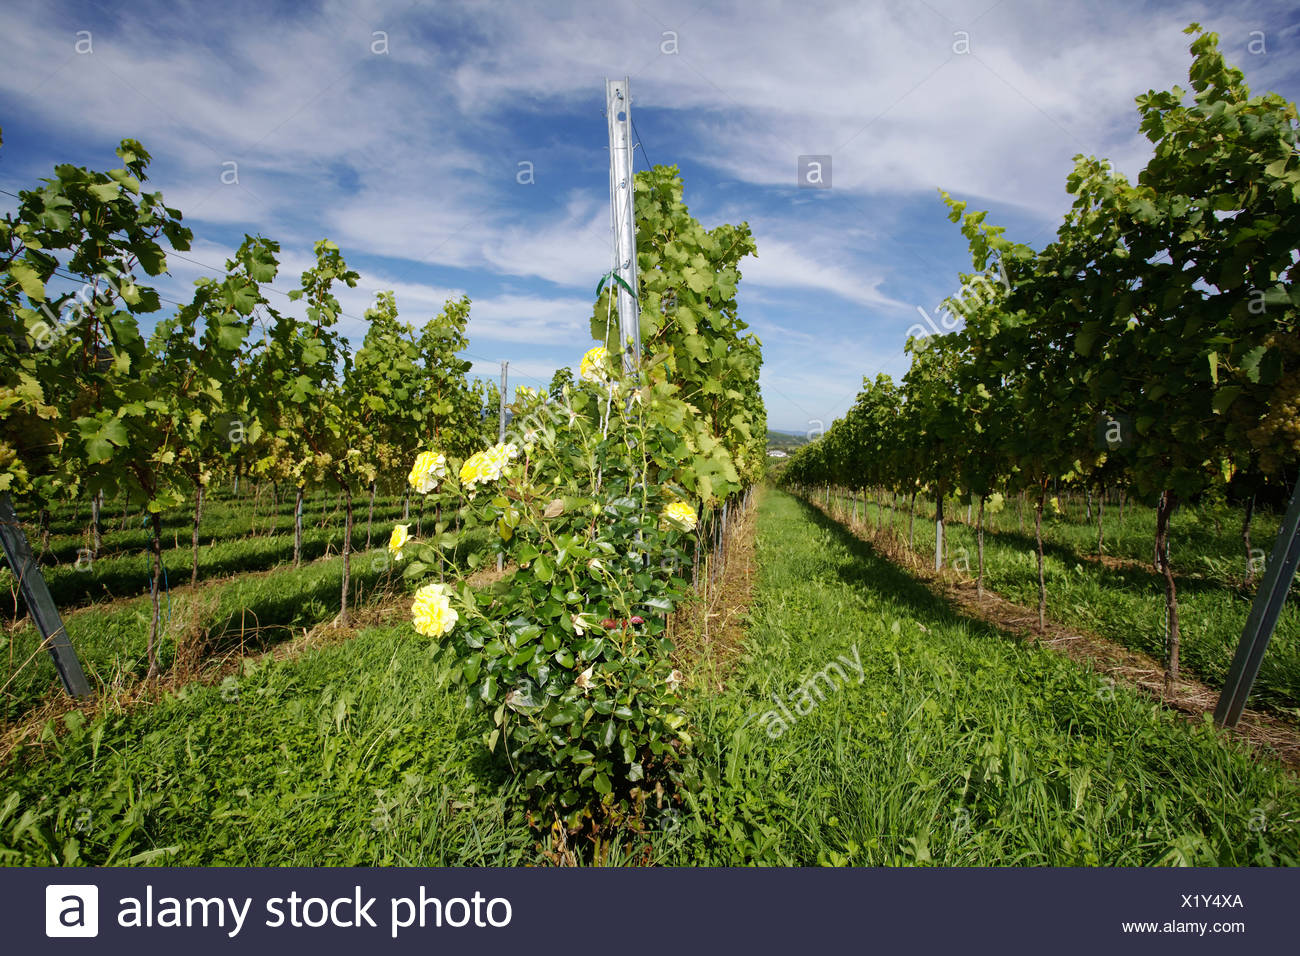 Rose bushes, planted to indicate fungal infestation at an early stage, organic wine growing, Staufen im Breisgau - Stock Image